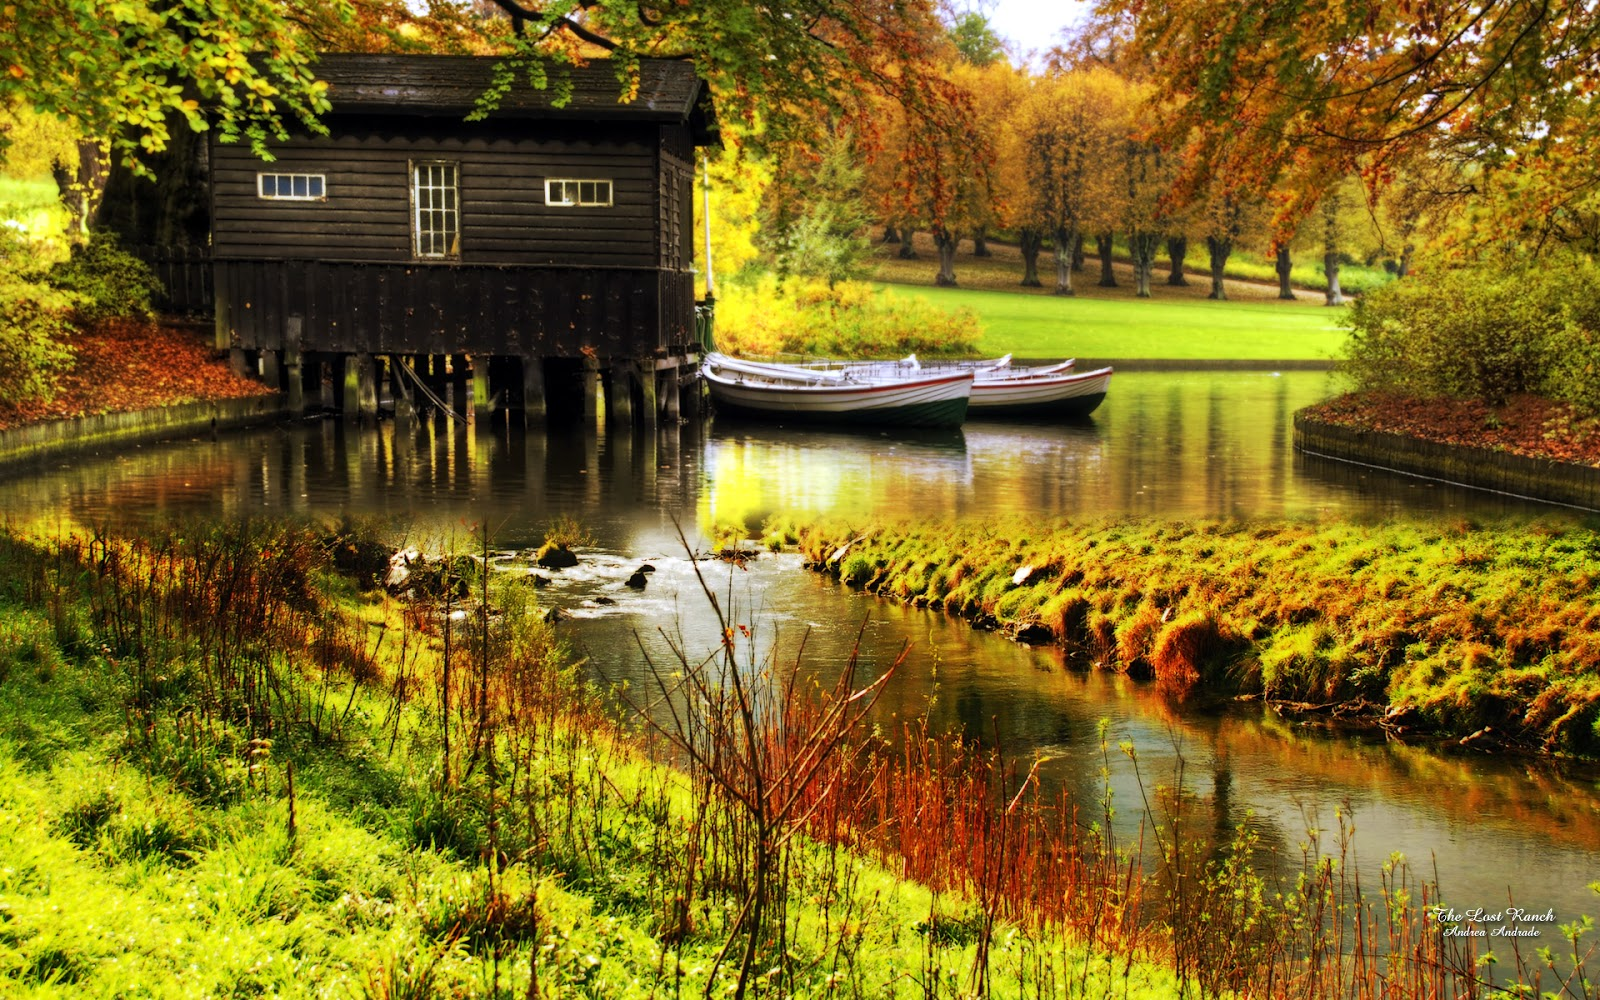 http://1.bp.blogspot.com/-XwxtEHfyGfI/UHmD6_zkBoI/AAAAAAAAAfU/3ODBiM3vcuc/s1600/autumn_hd_top_wallpapers.jpg